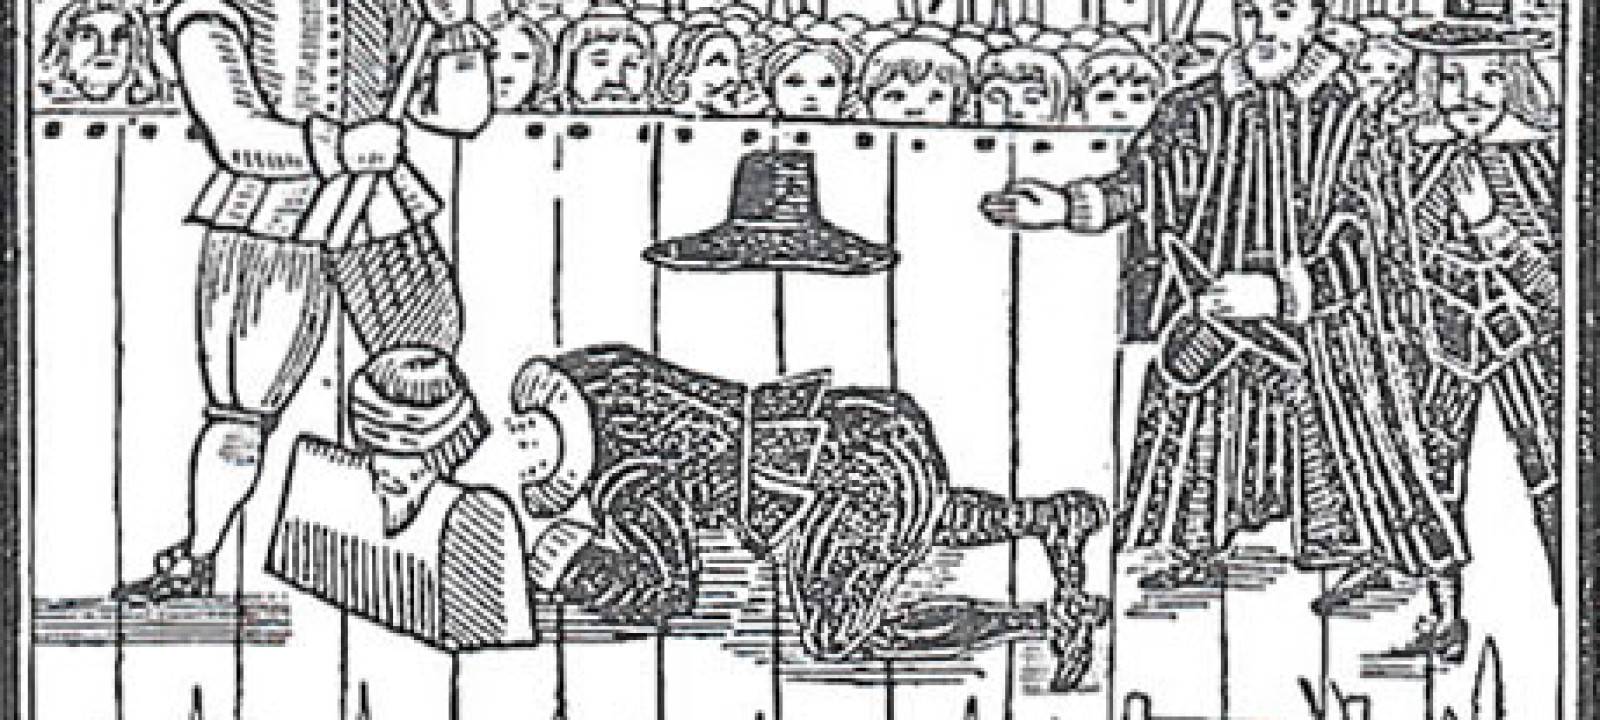 The beheading of Charles I